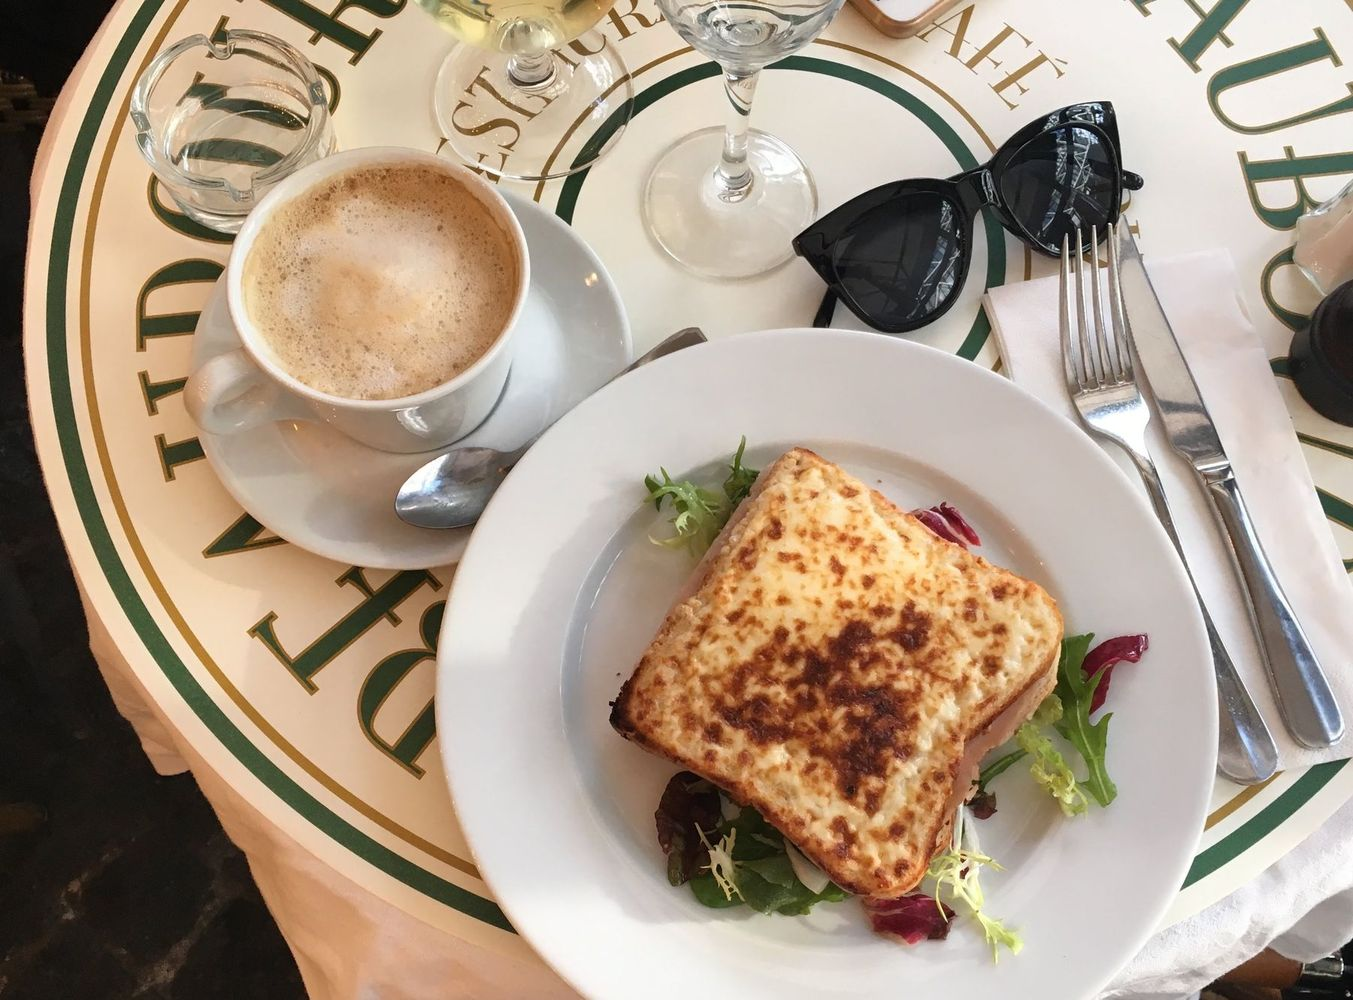 Where To Eat During Winter in Paris - Croque Monsieur